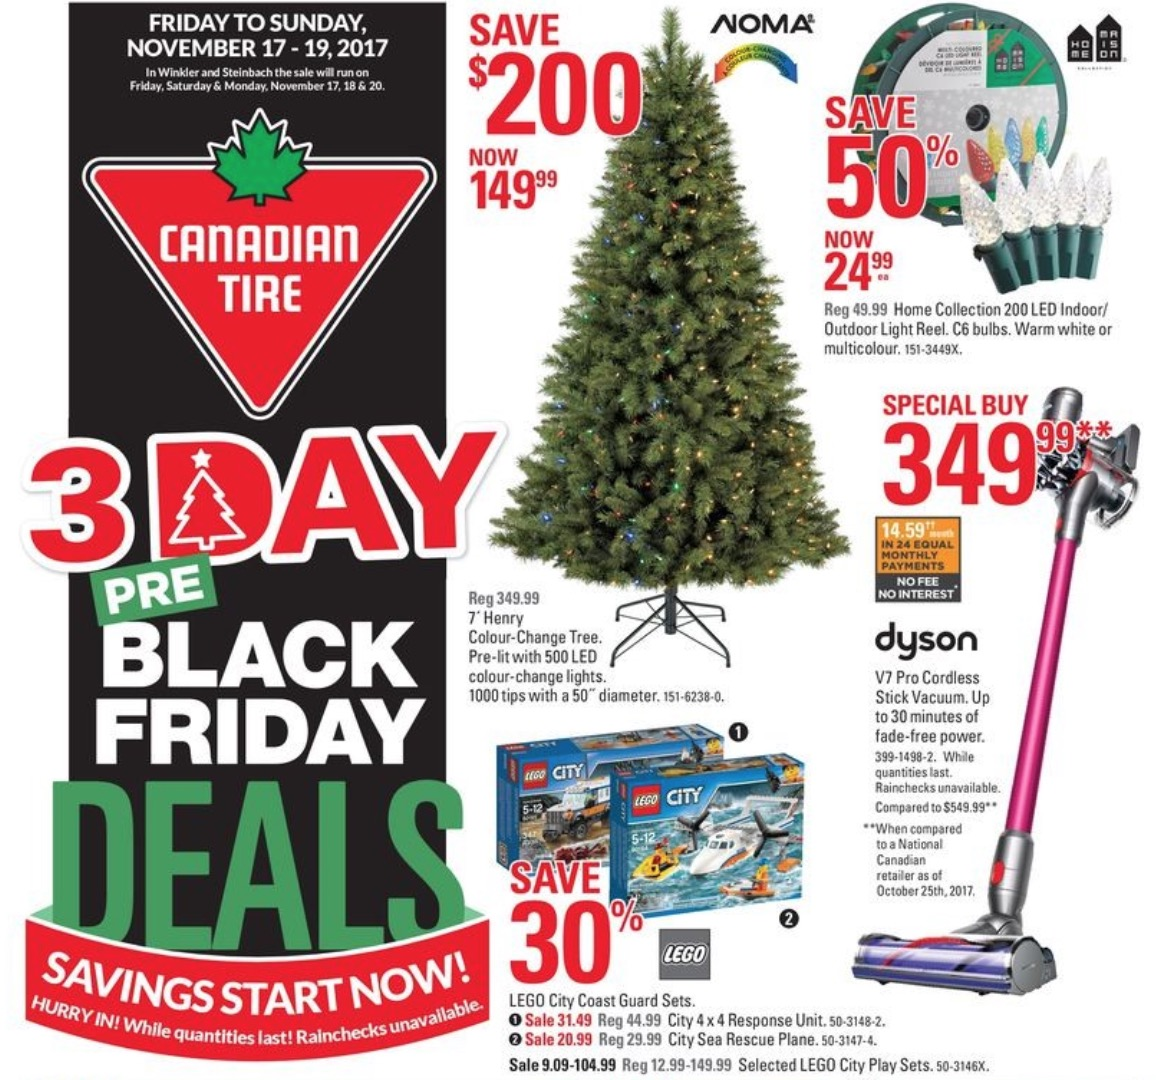 canadian tire pre black friday 3 days sale save 80 cookware set 60 on carpet cleaner more. Black Bedroom Furniture Sets. Home Design Ideas